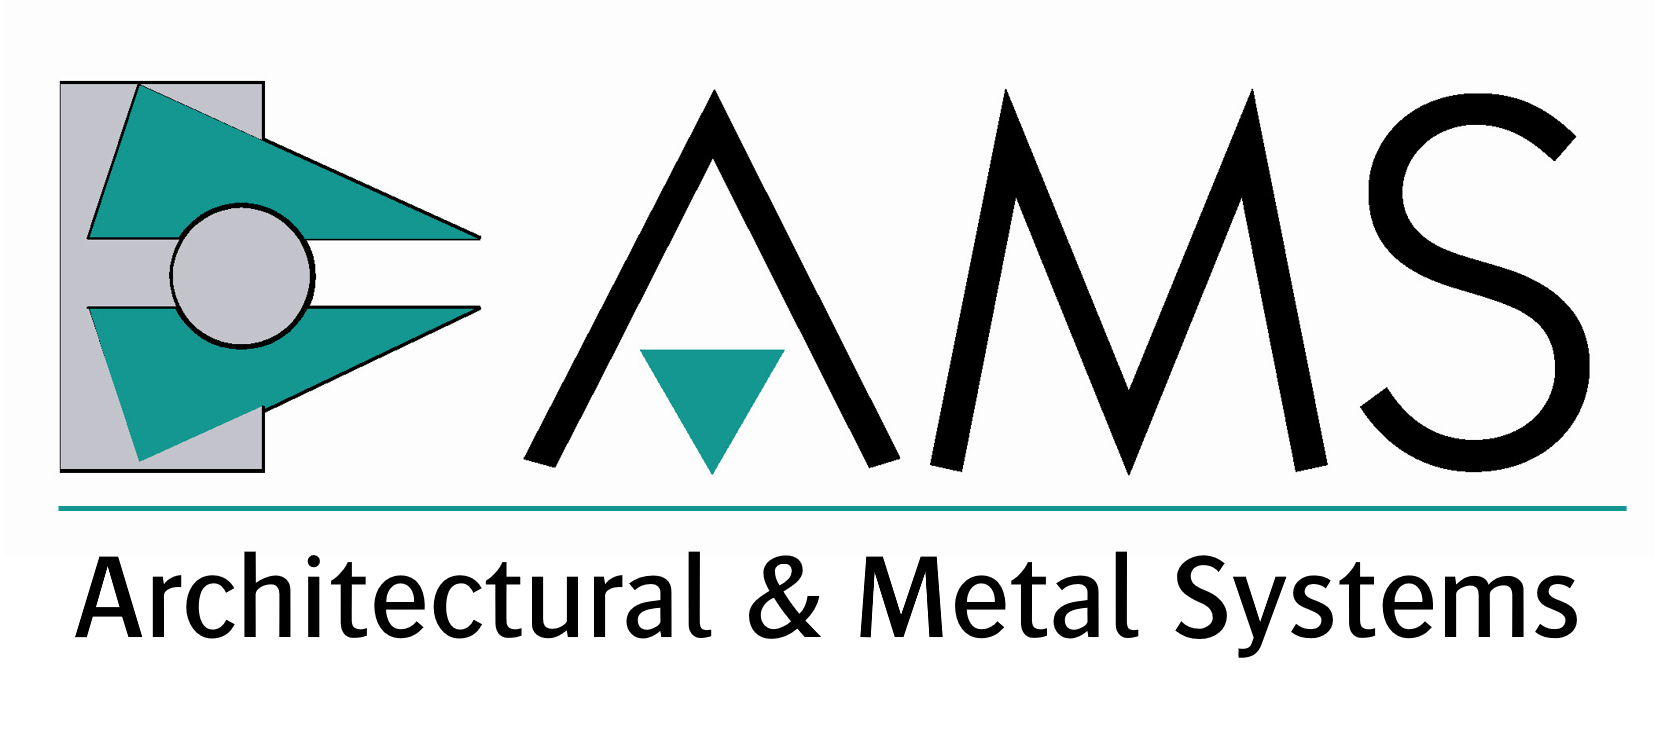 AMS - Architectural & Metal Systems Ltd